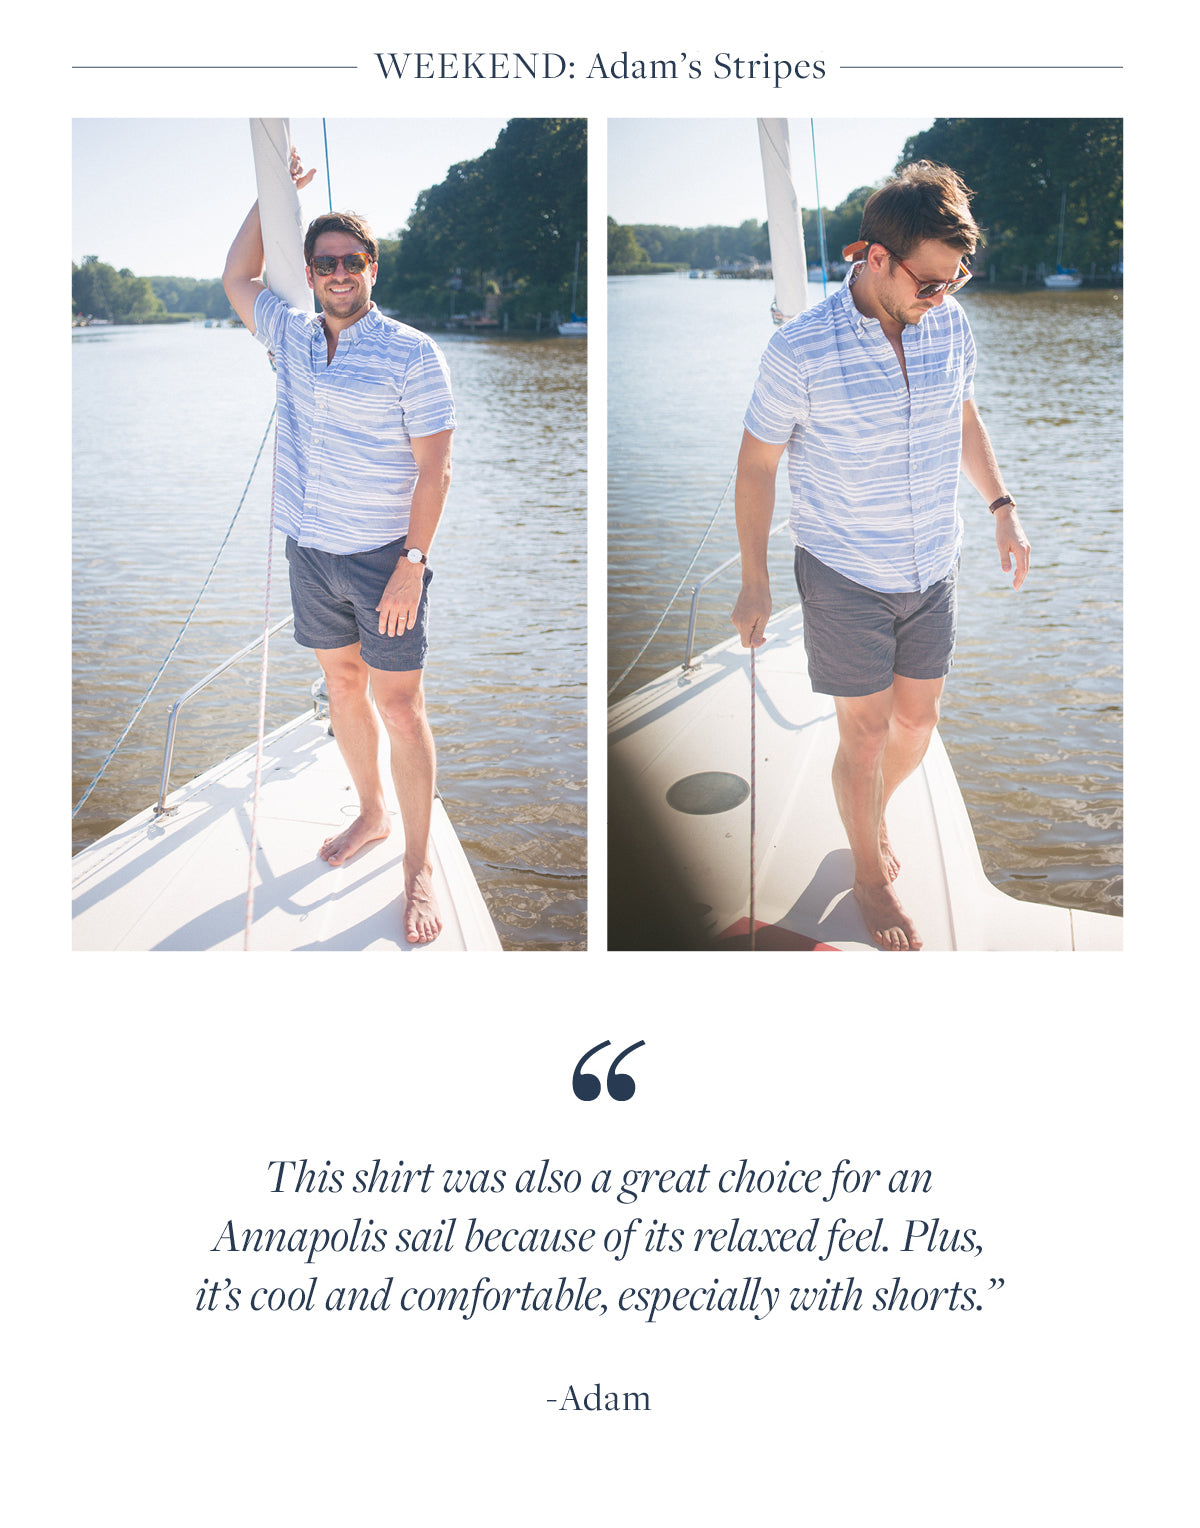 This shirt was also a great choice for an  Annapolis sail because of its relaxed feel. Plus, it's cool and comfortable, especially with shorts.